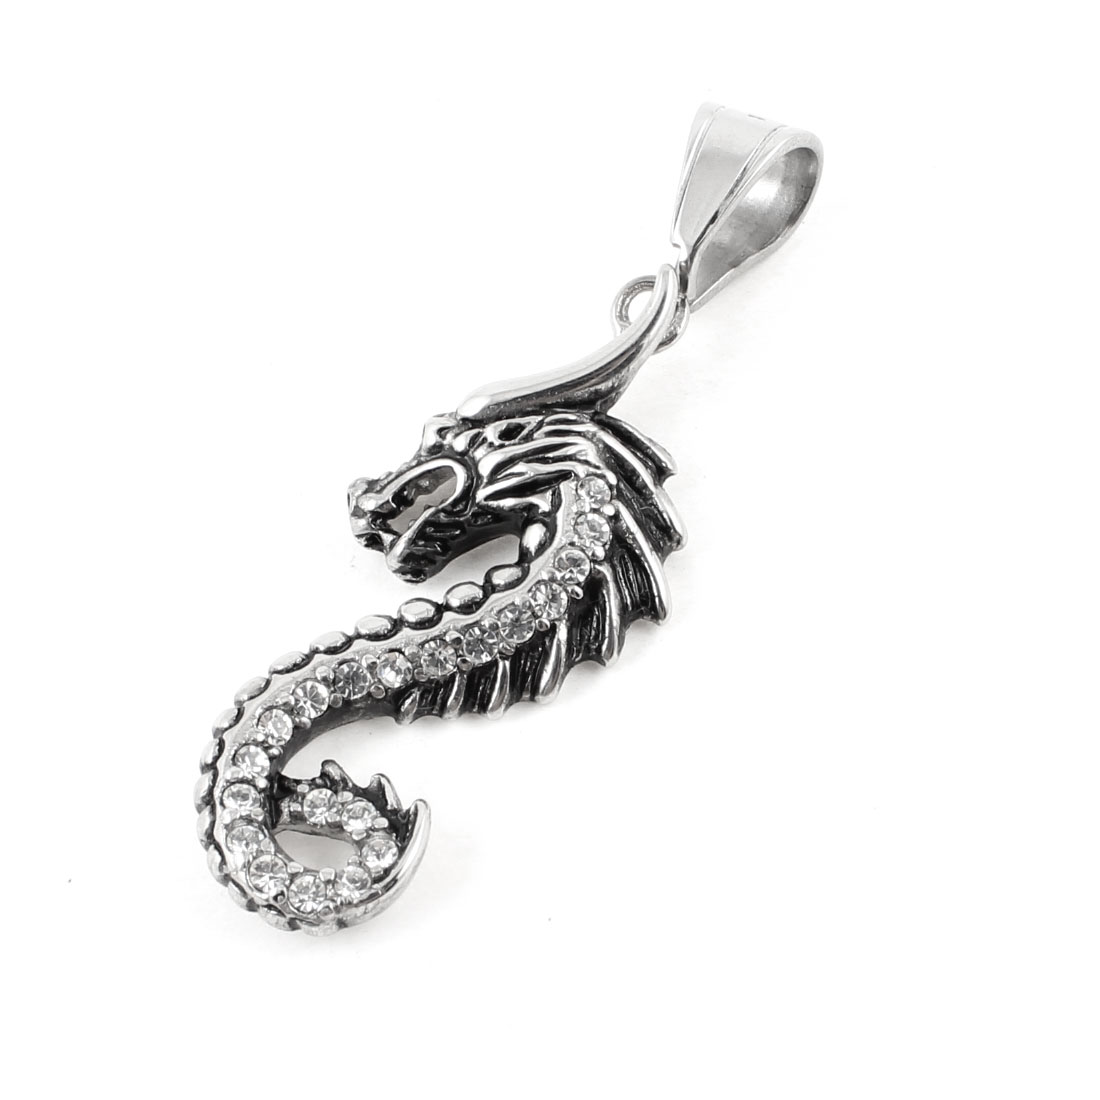 Silver Tone Stainless Steel Plastic Rhinestone Decor Dragon Pendant Necklace